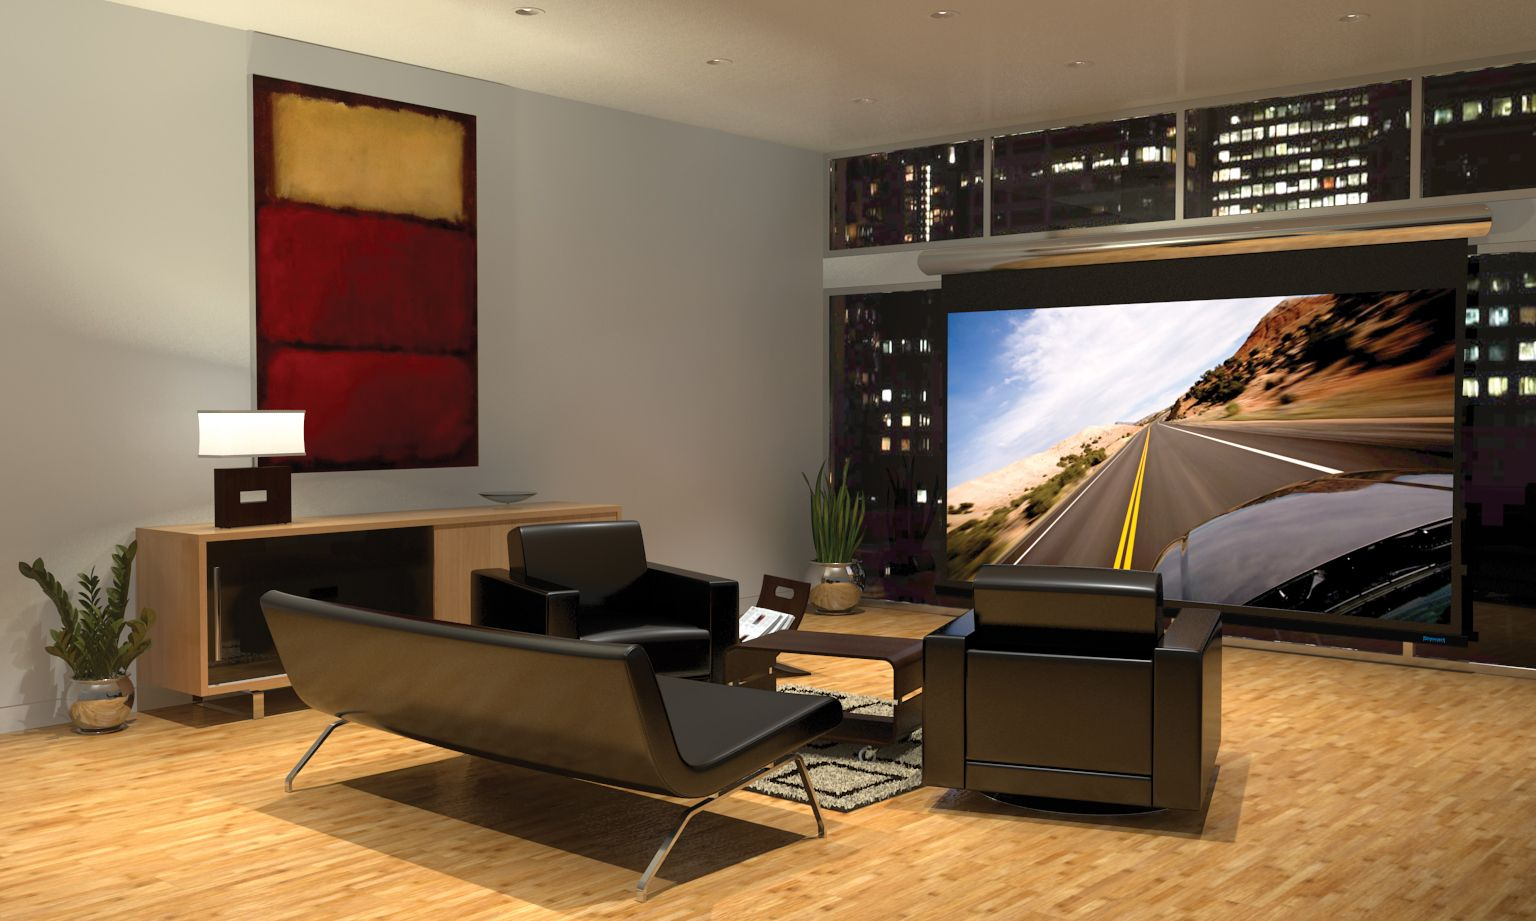 20 Beautiful Entertainment Room Ideas | Projection screen, Screens ...